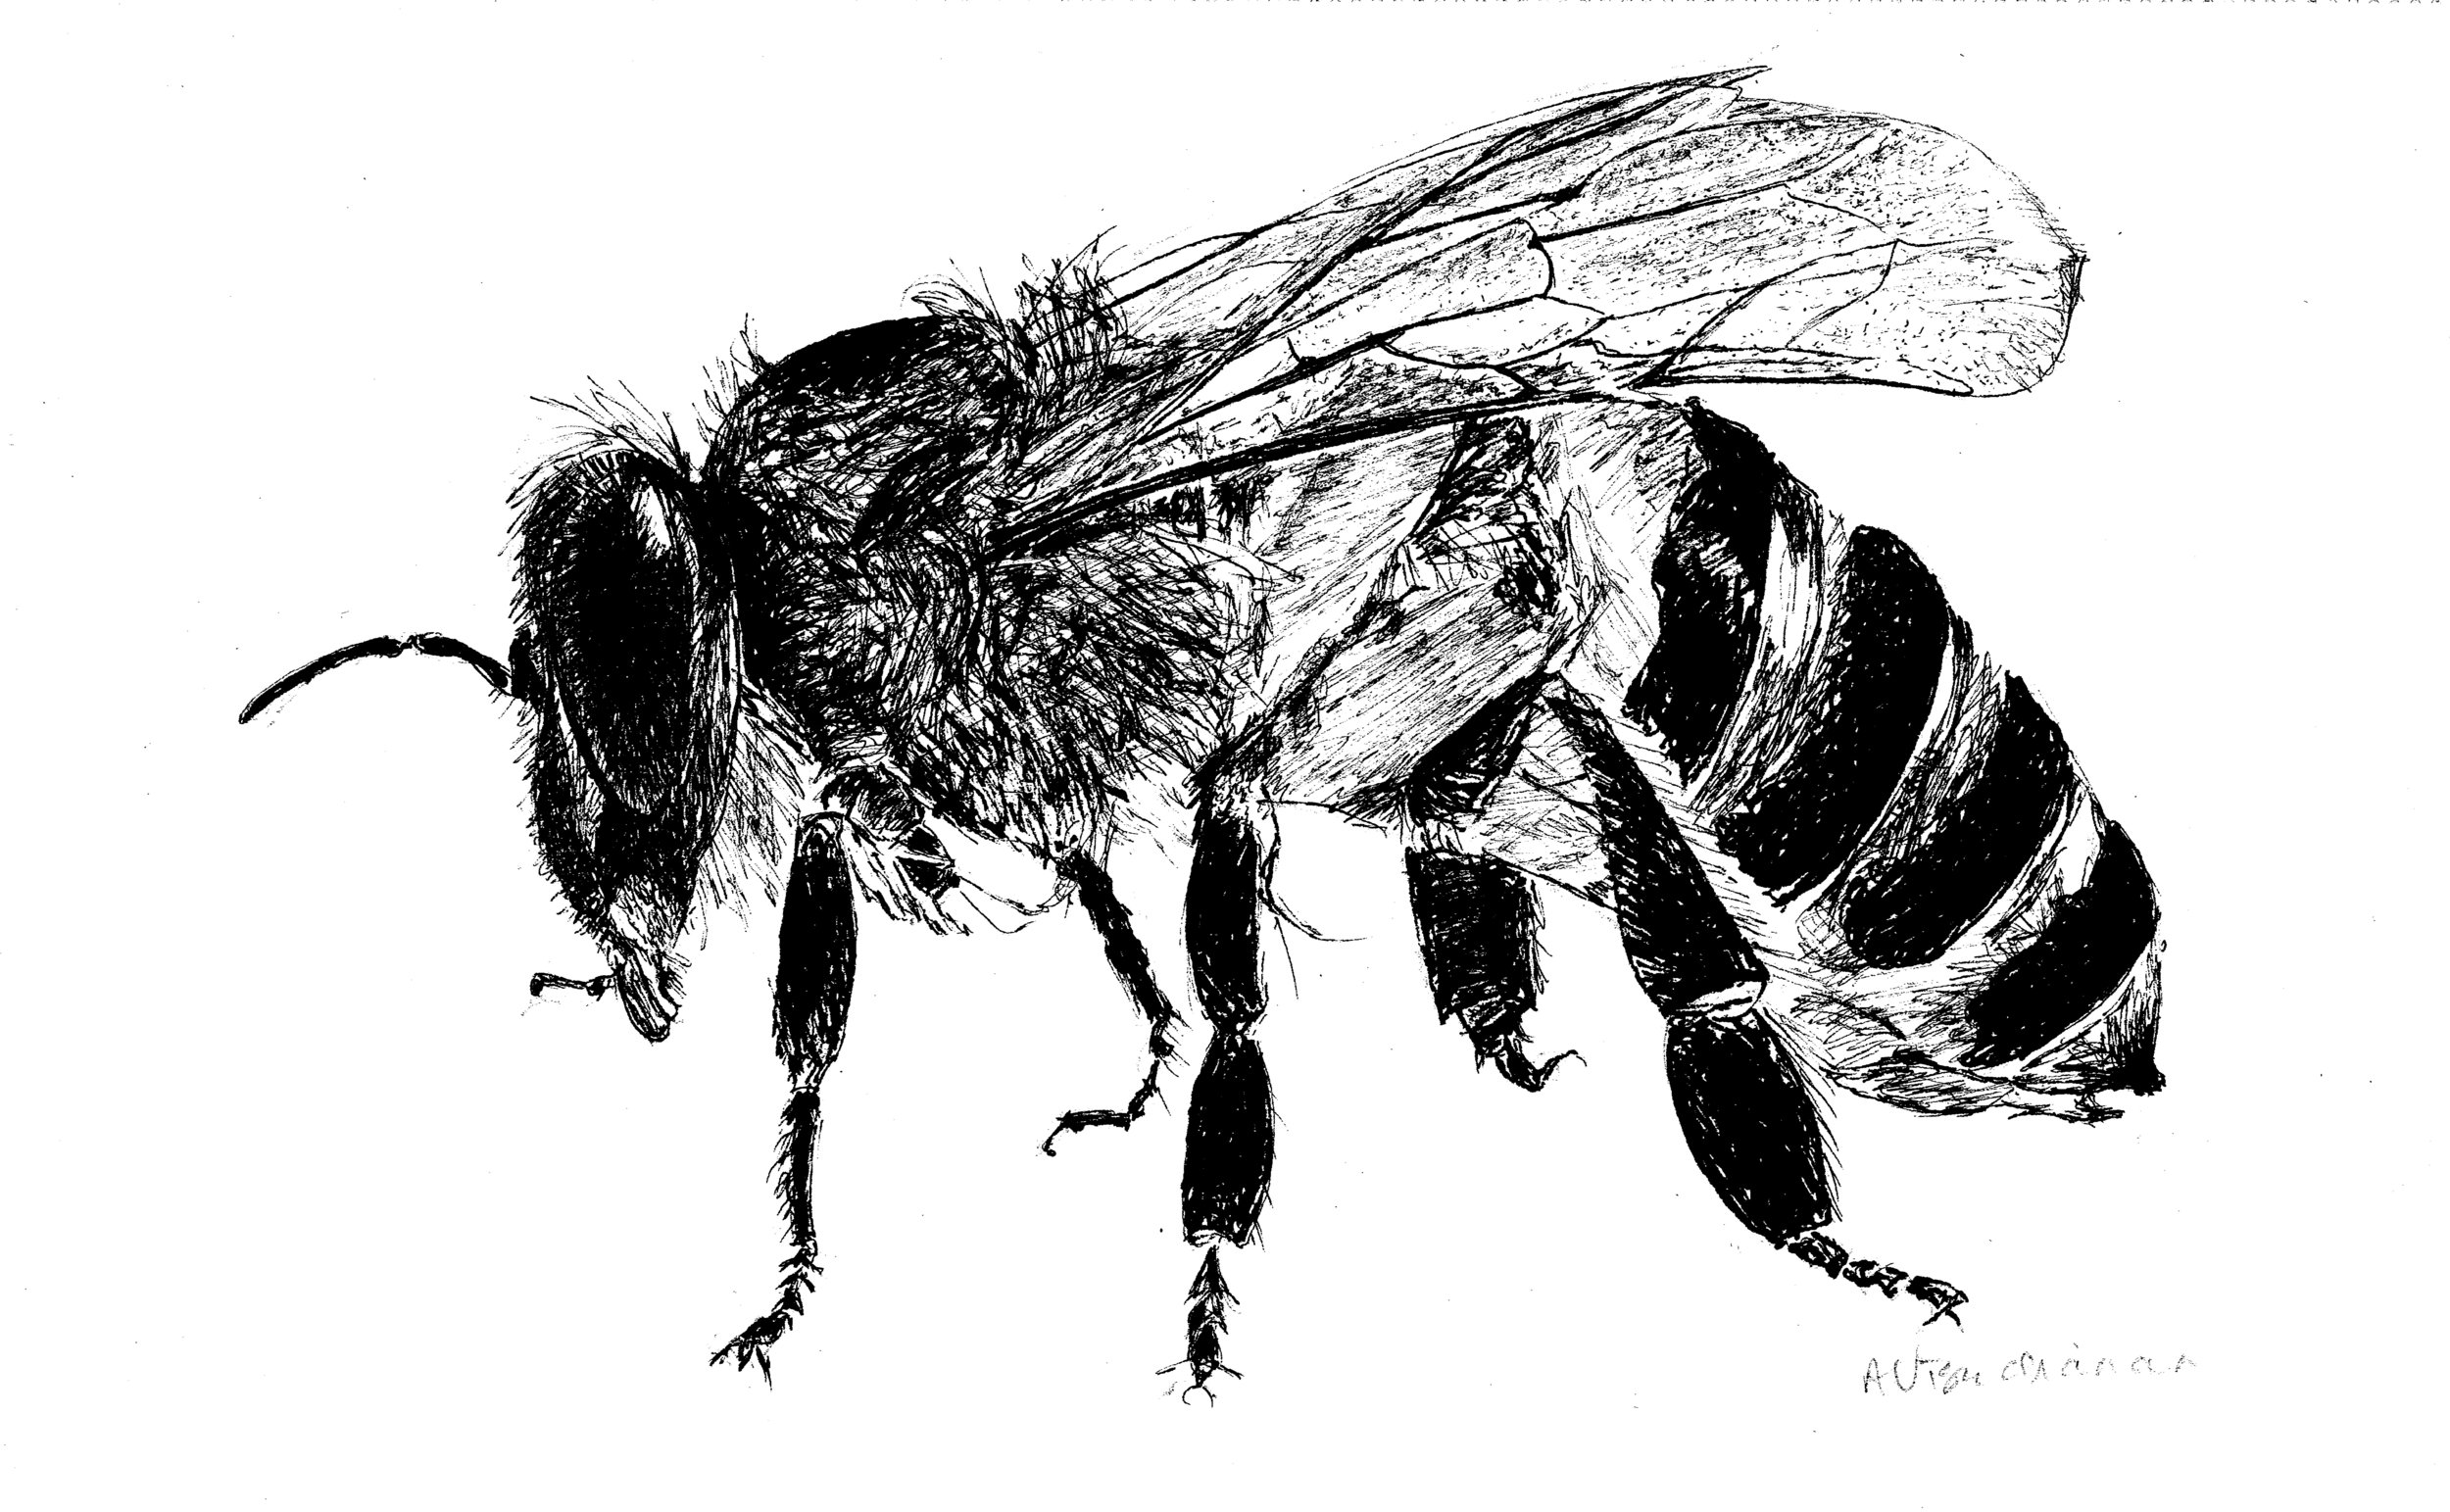 Honeybee, pen and ink, 2016